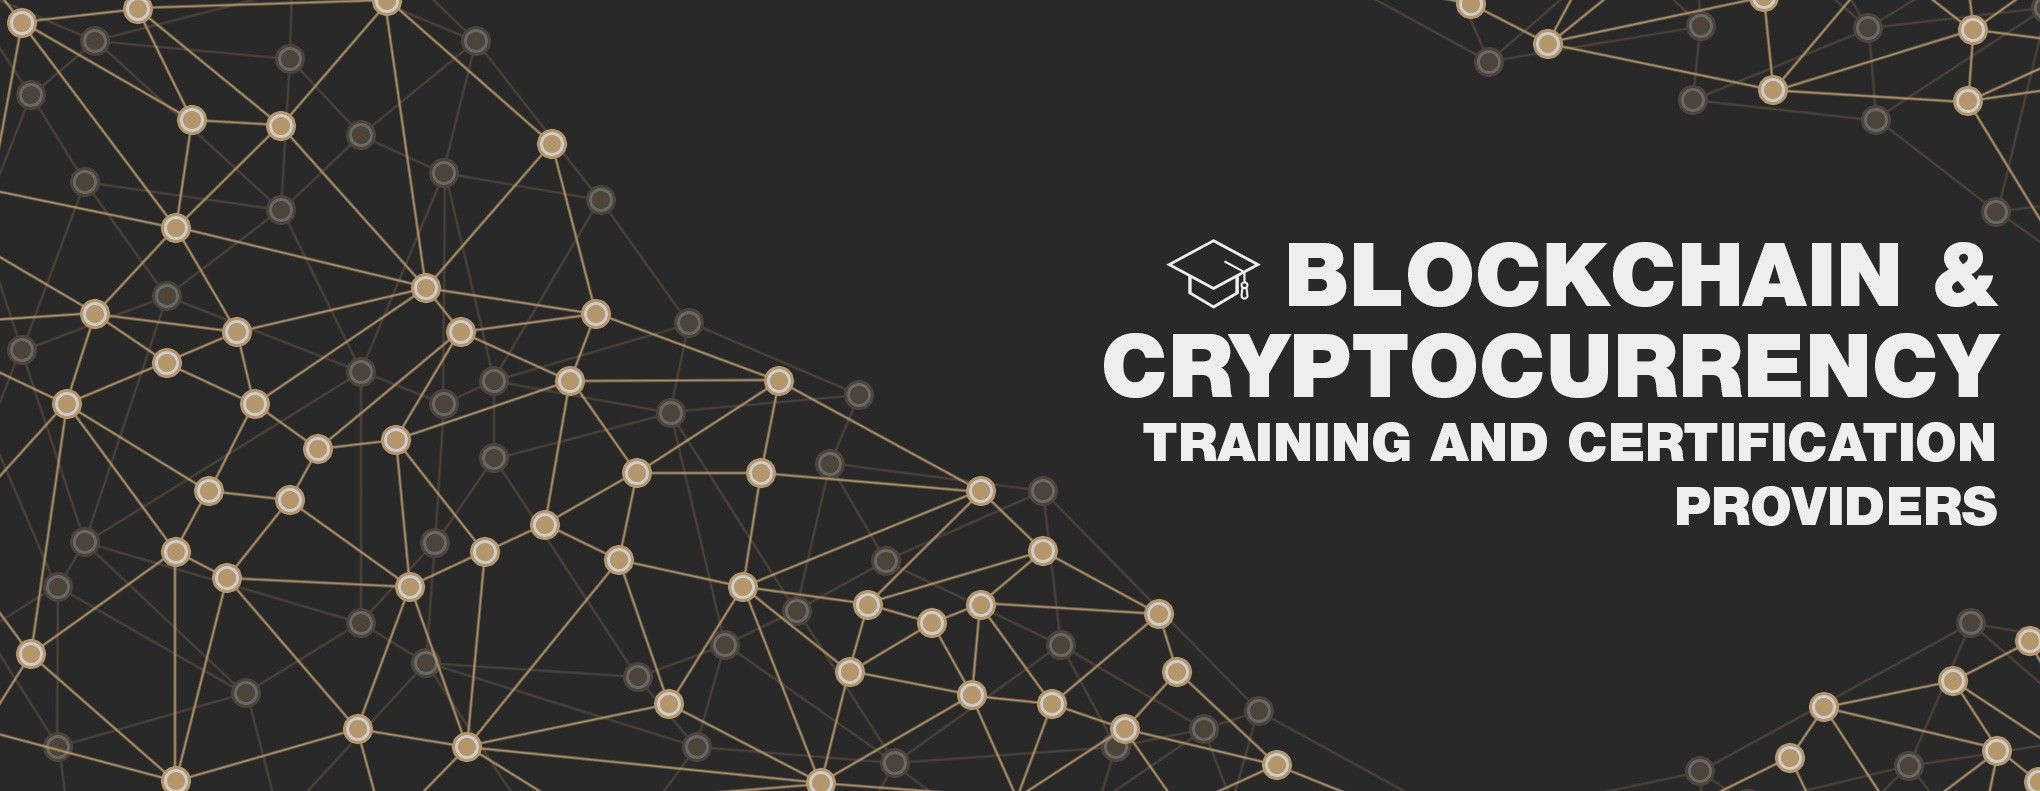 Blockchain Cryptocurrency Training And Certification Providers